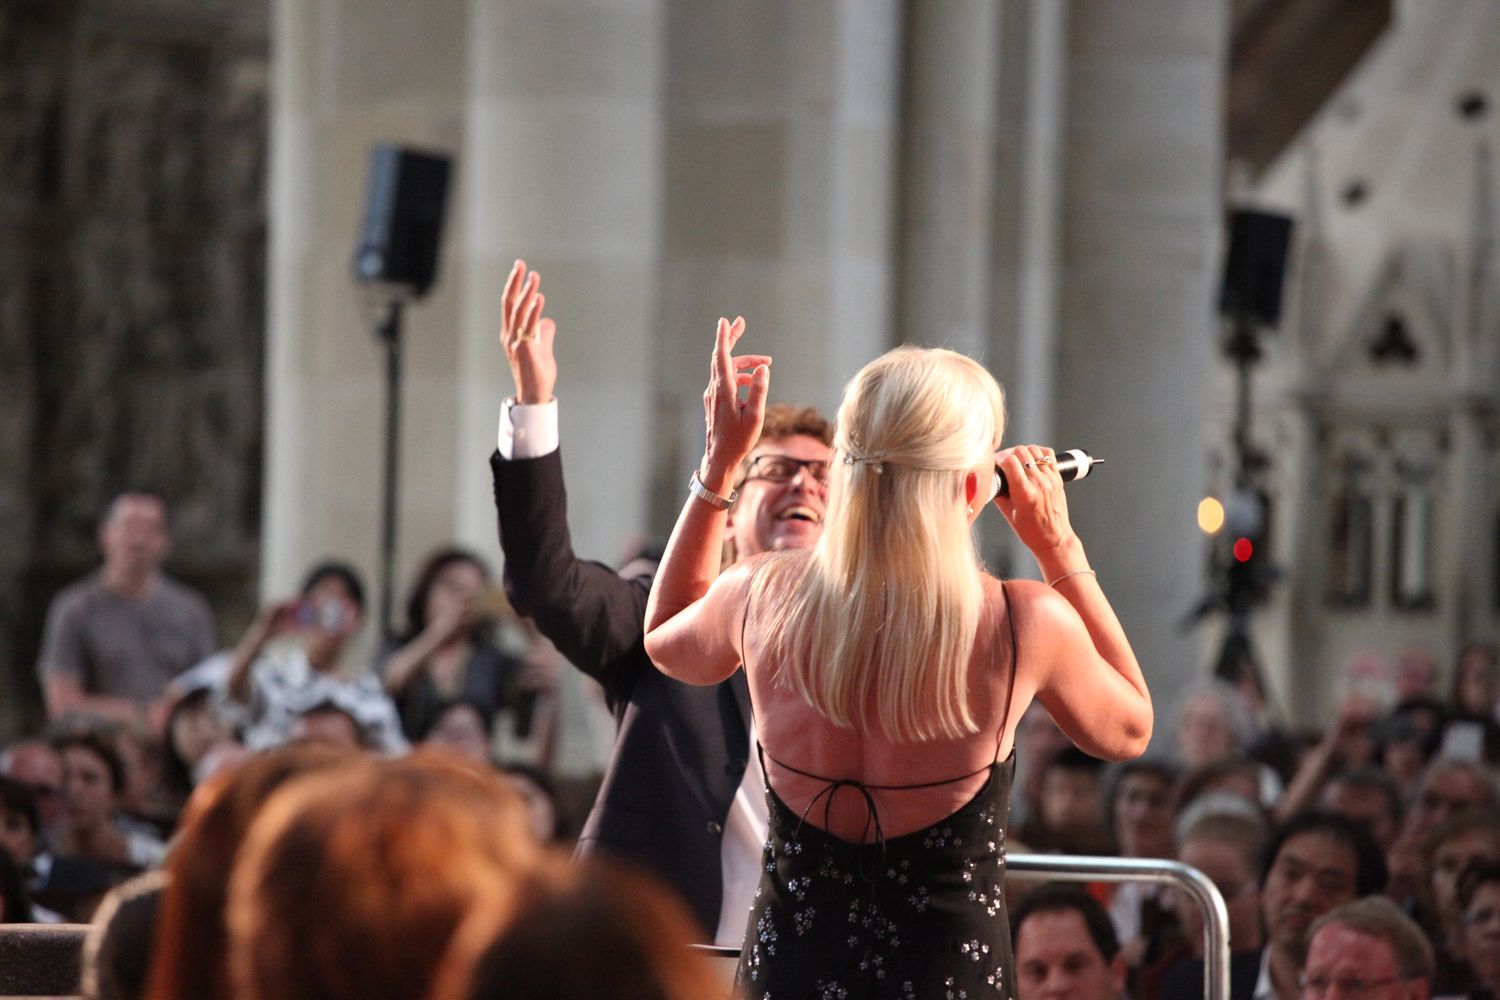 Fred and Gunnel Sjöberg performing at the Peace Concert (©INTERKULTUR)